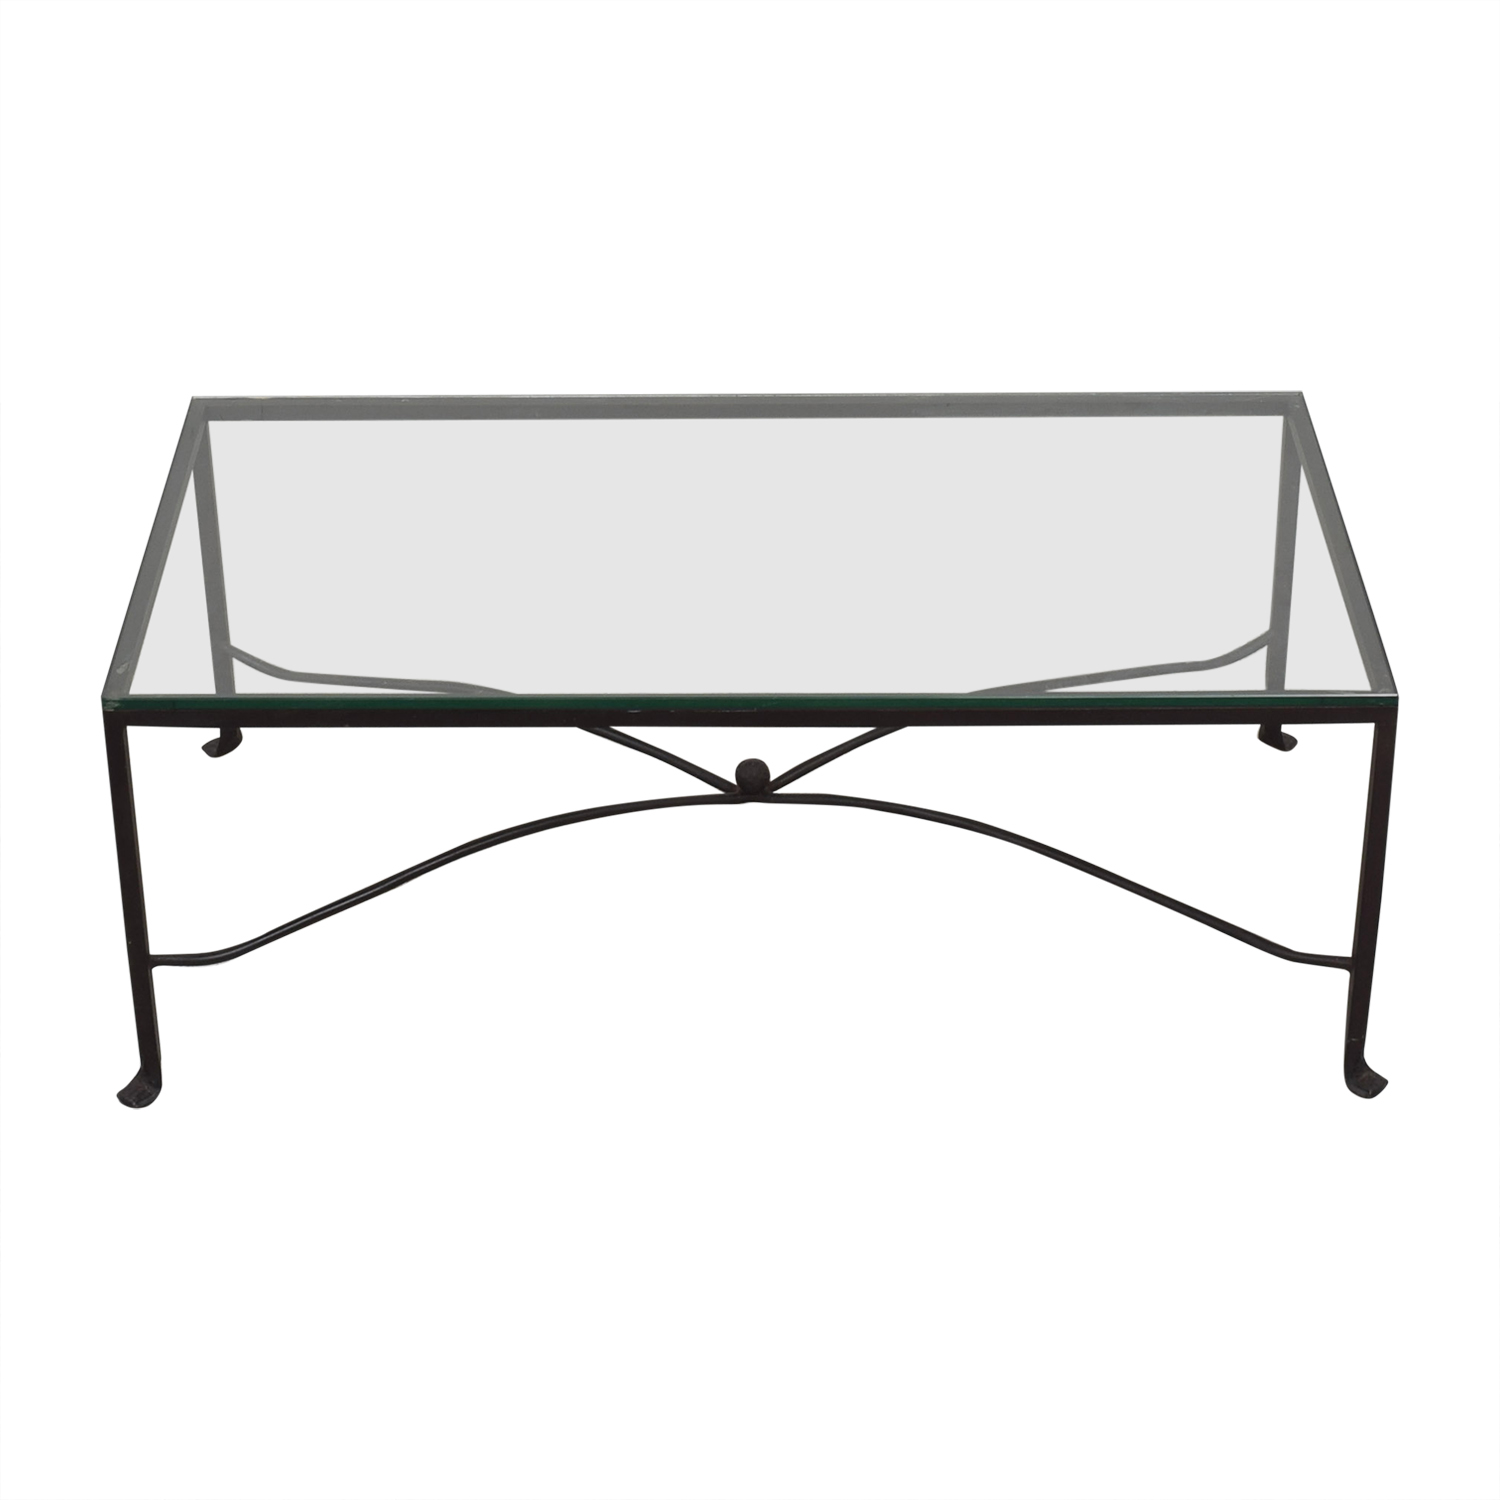 Crate & Barrel Crate & Barrel Glass Top Coffee Table for sale